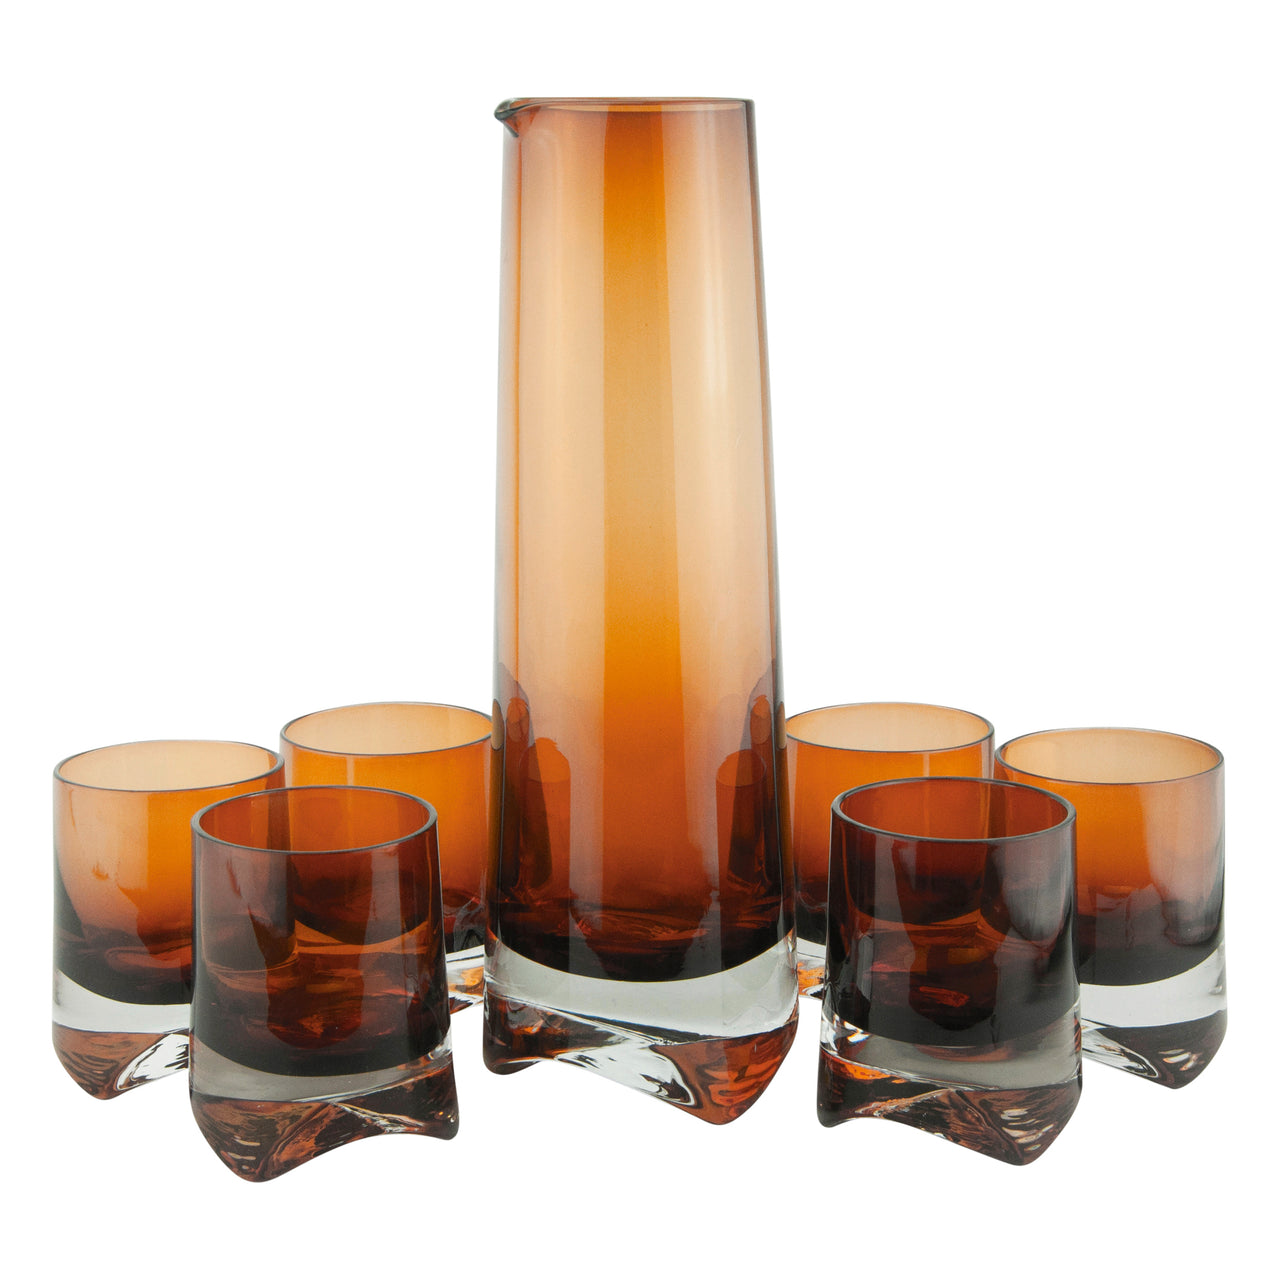 MCM Vintage Denby Brown Cocktail Pitcher Set |The Hour